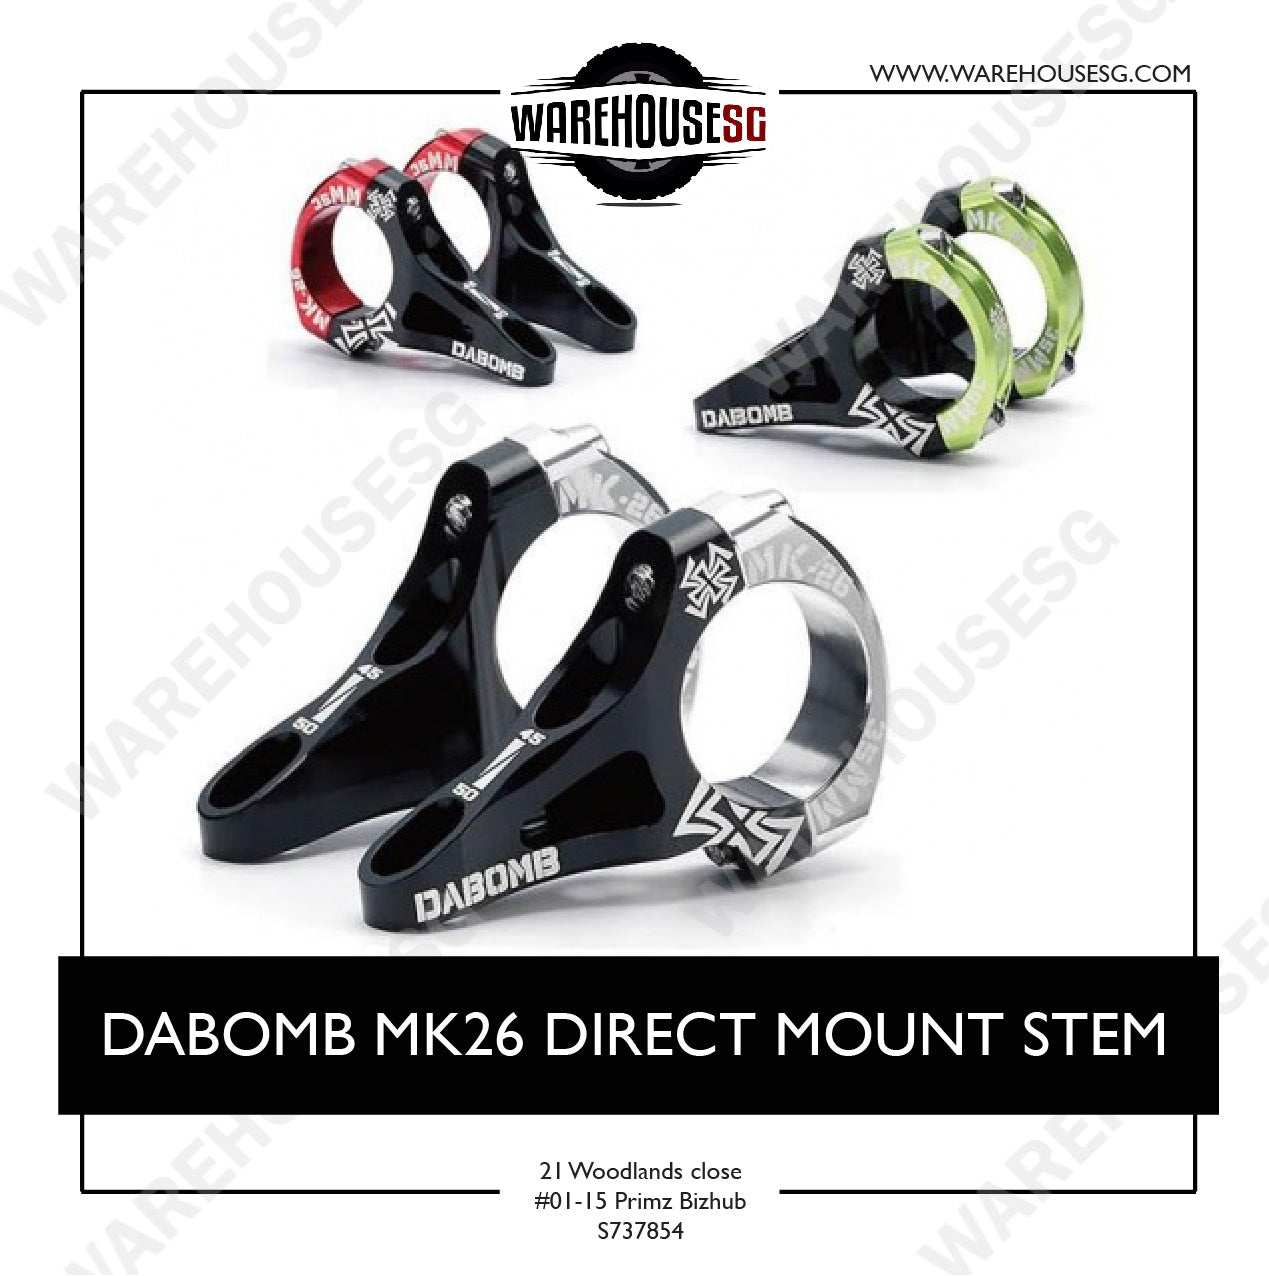 DABOMB MK26 DIRECT MOUNT STEM